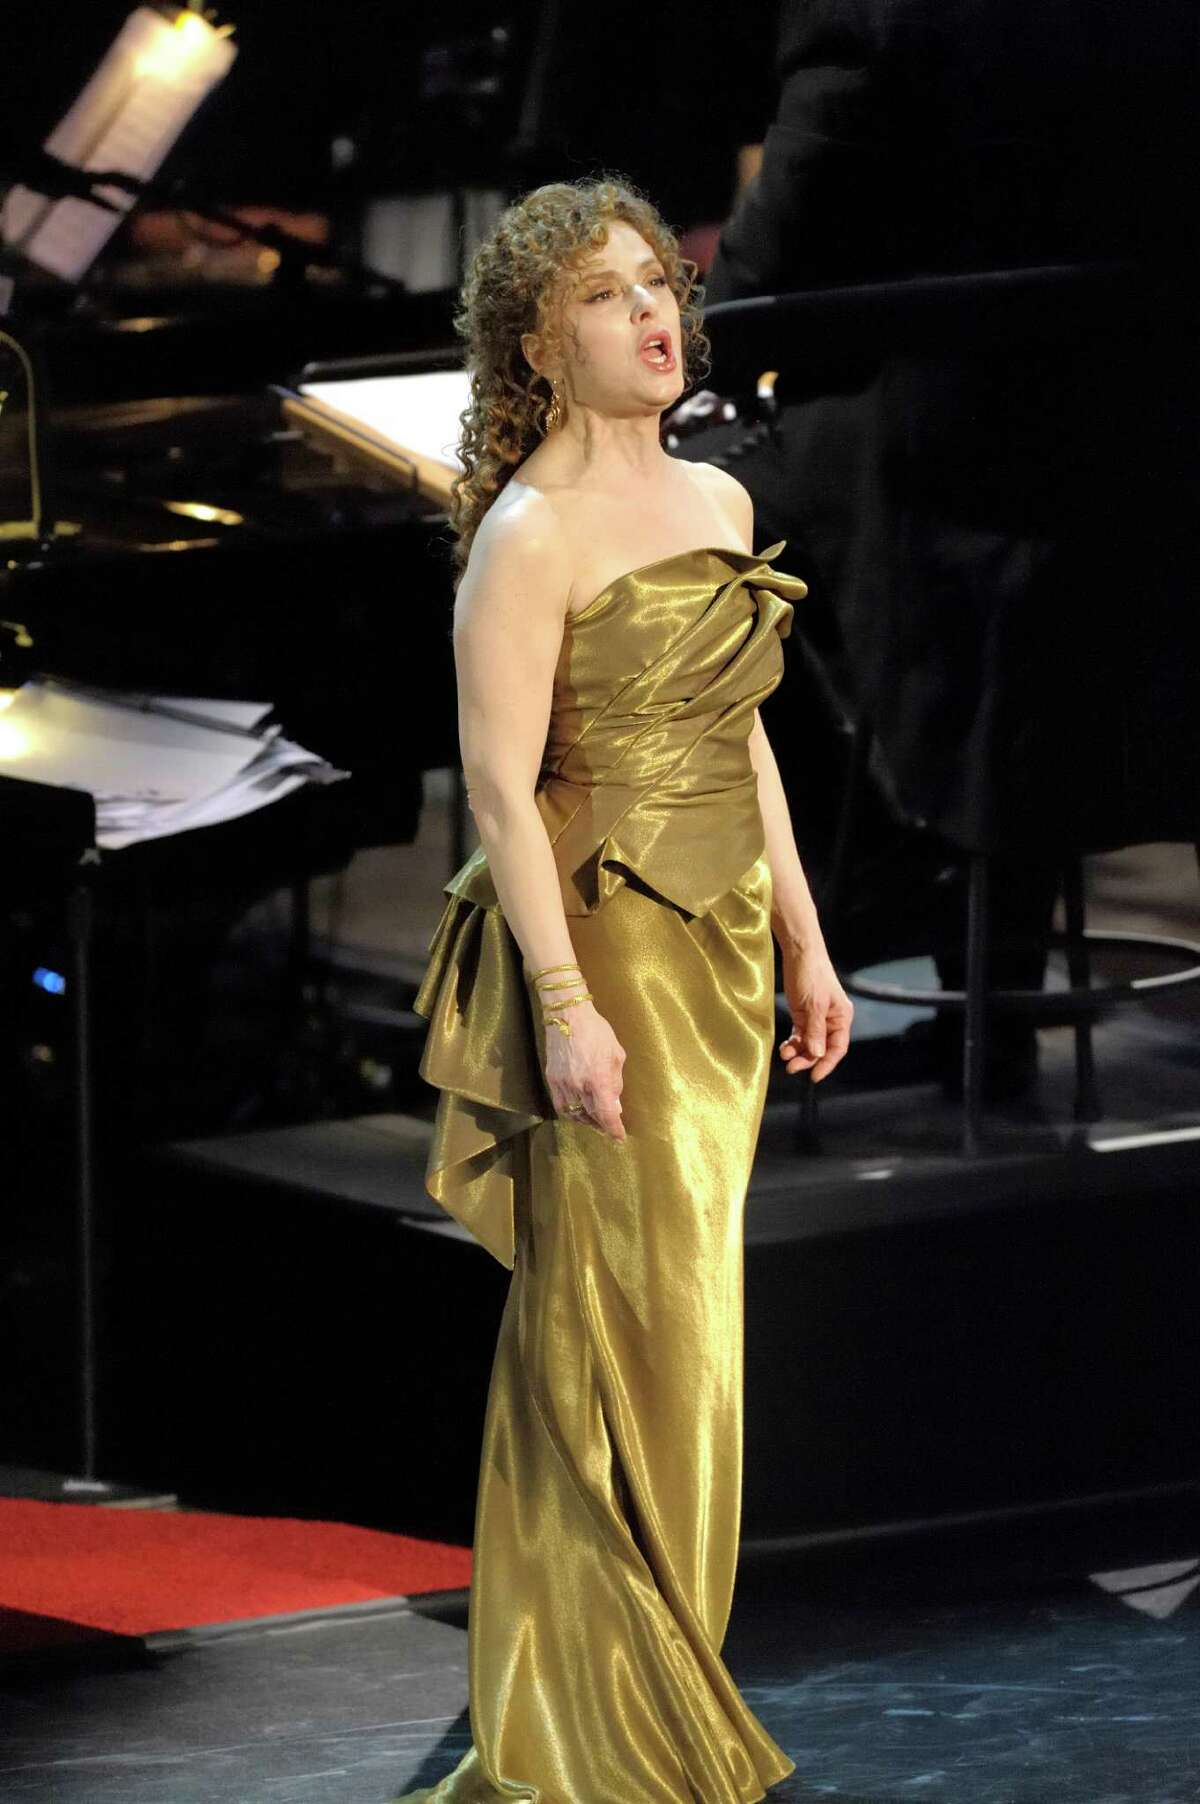 Bernadette Peters will sing Broadway classics, with an emphasis on Stephen Sondheim works, with the Houston Symphony.